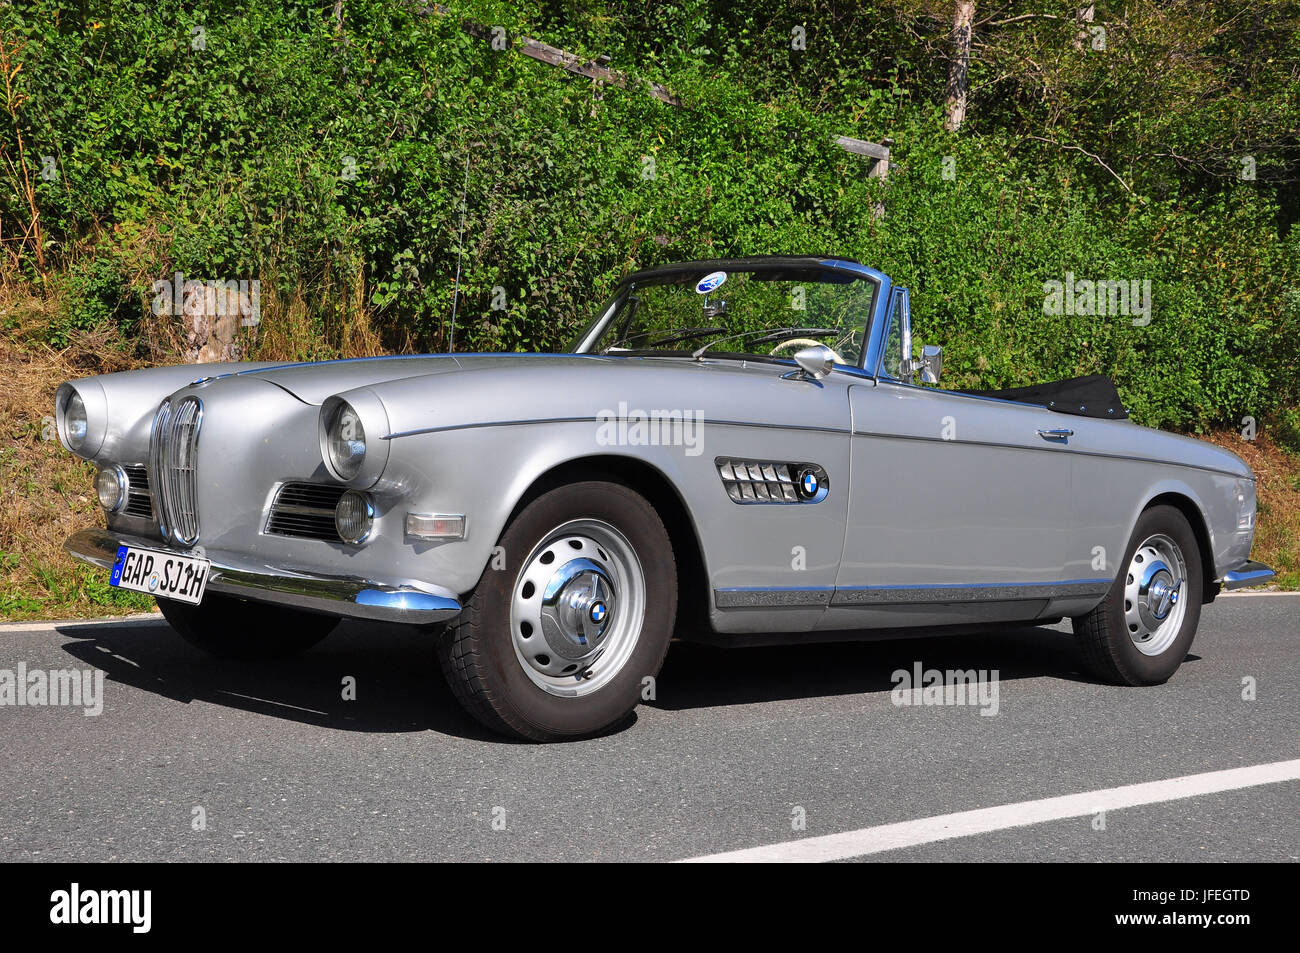 Old Timer Exit Thousand Of Fiori Bmw 503 Convertible Stock Photo Alamy